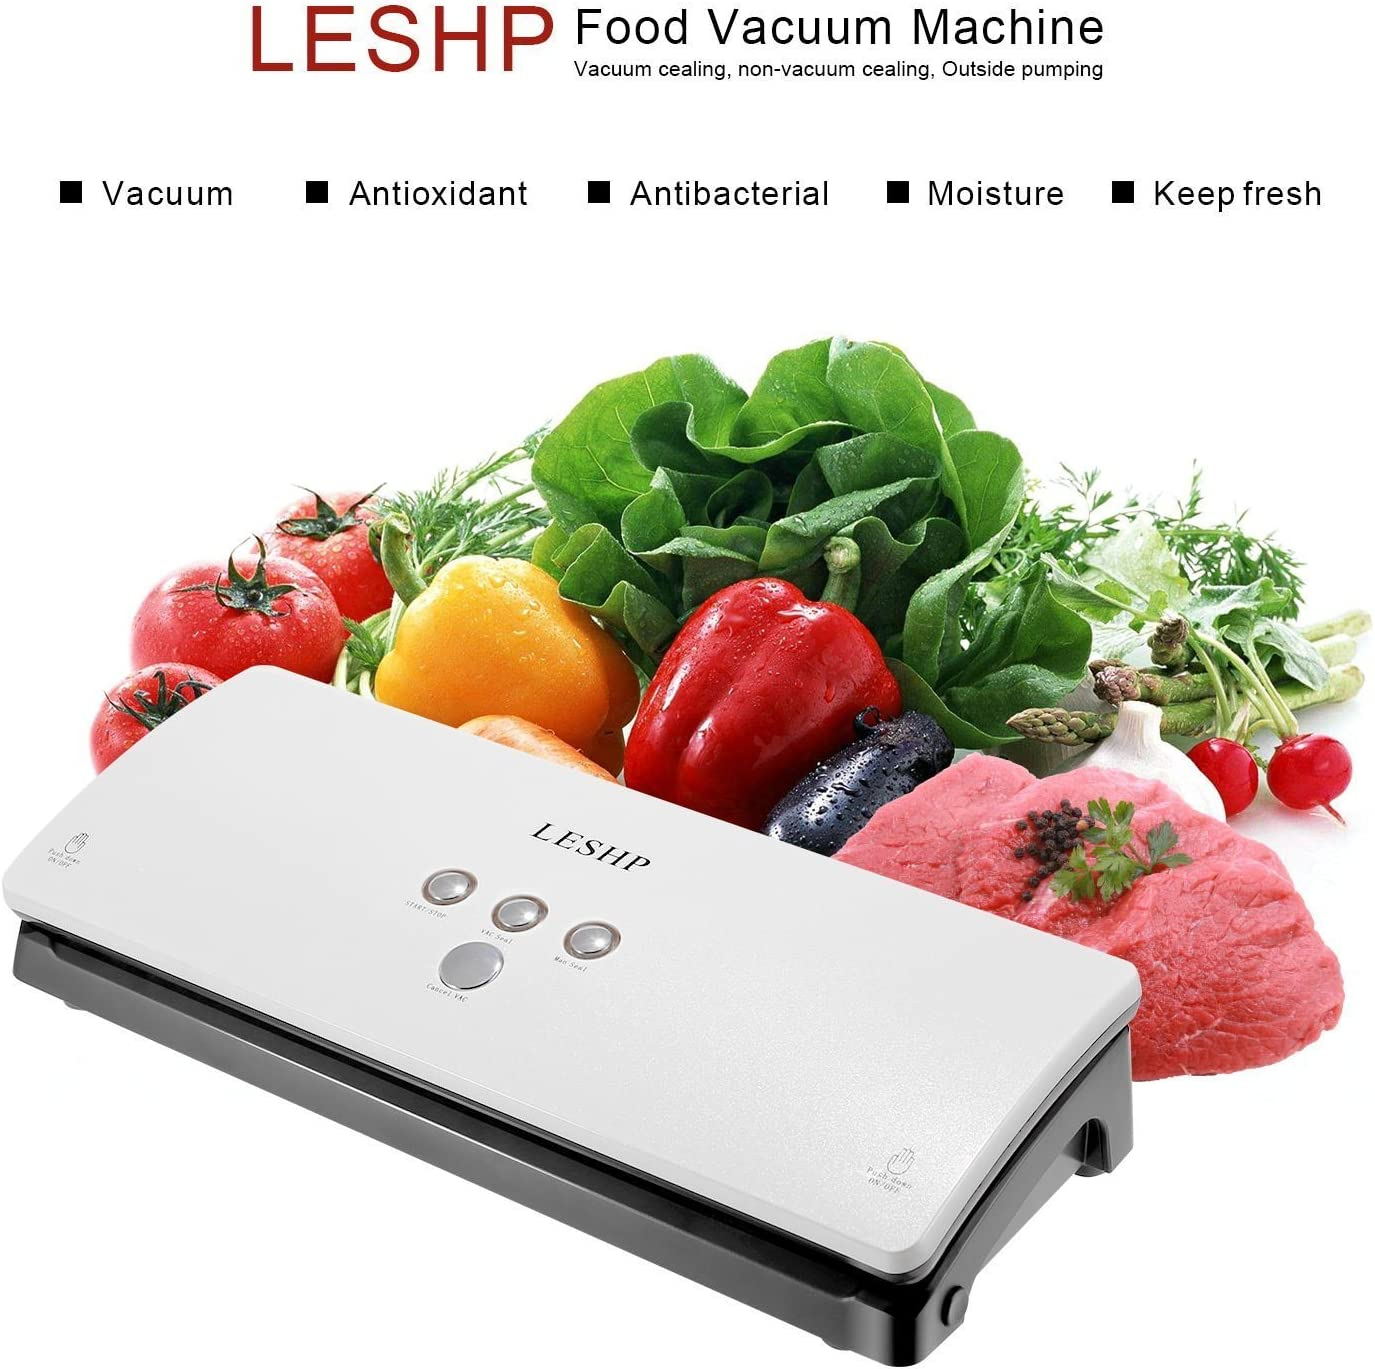 LESHP Portable Automatic Vacuum Sealer Sealing Machine for Household Food Preservation